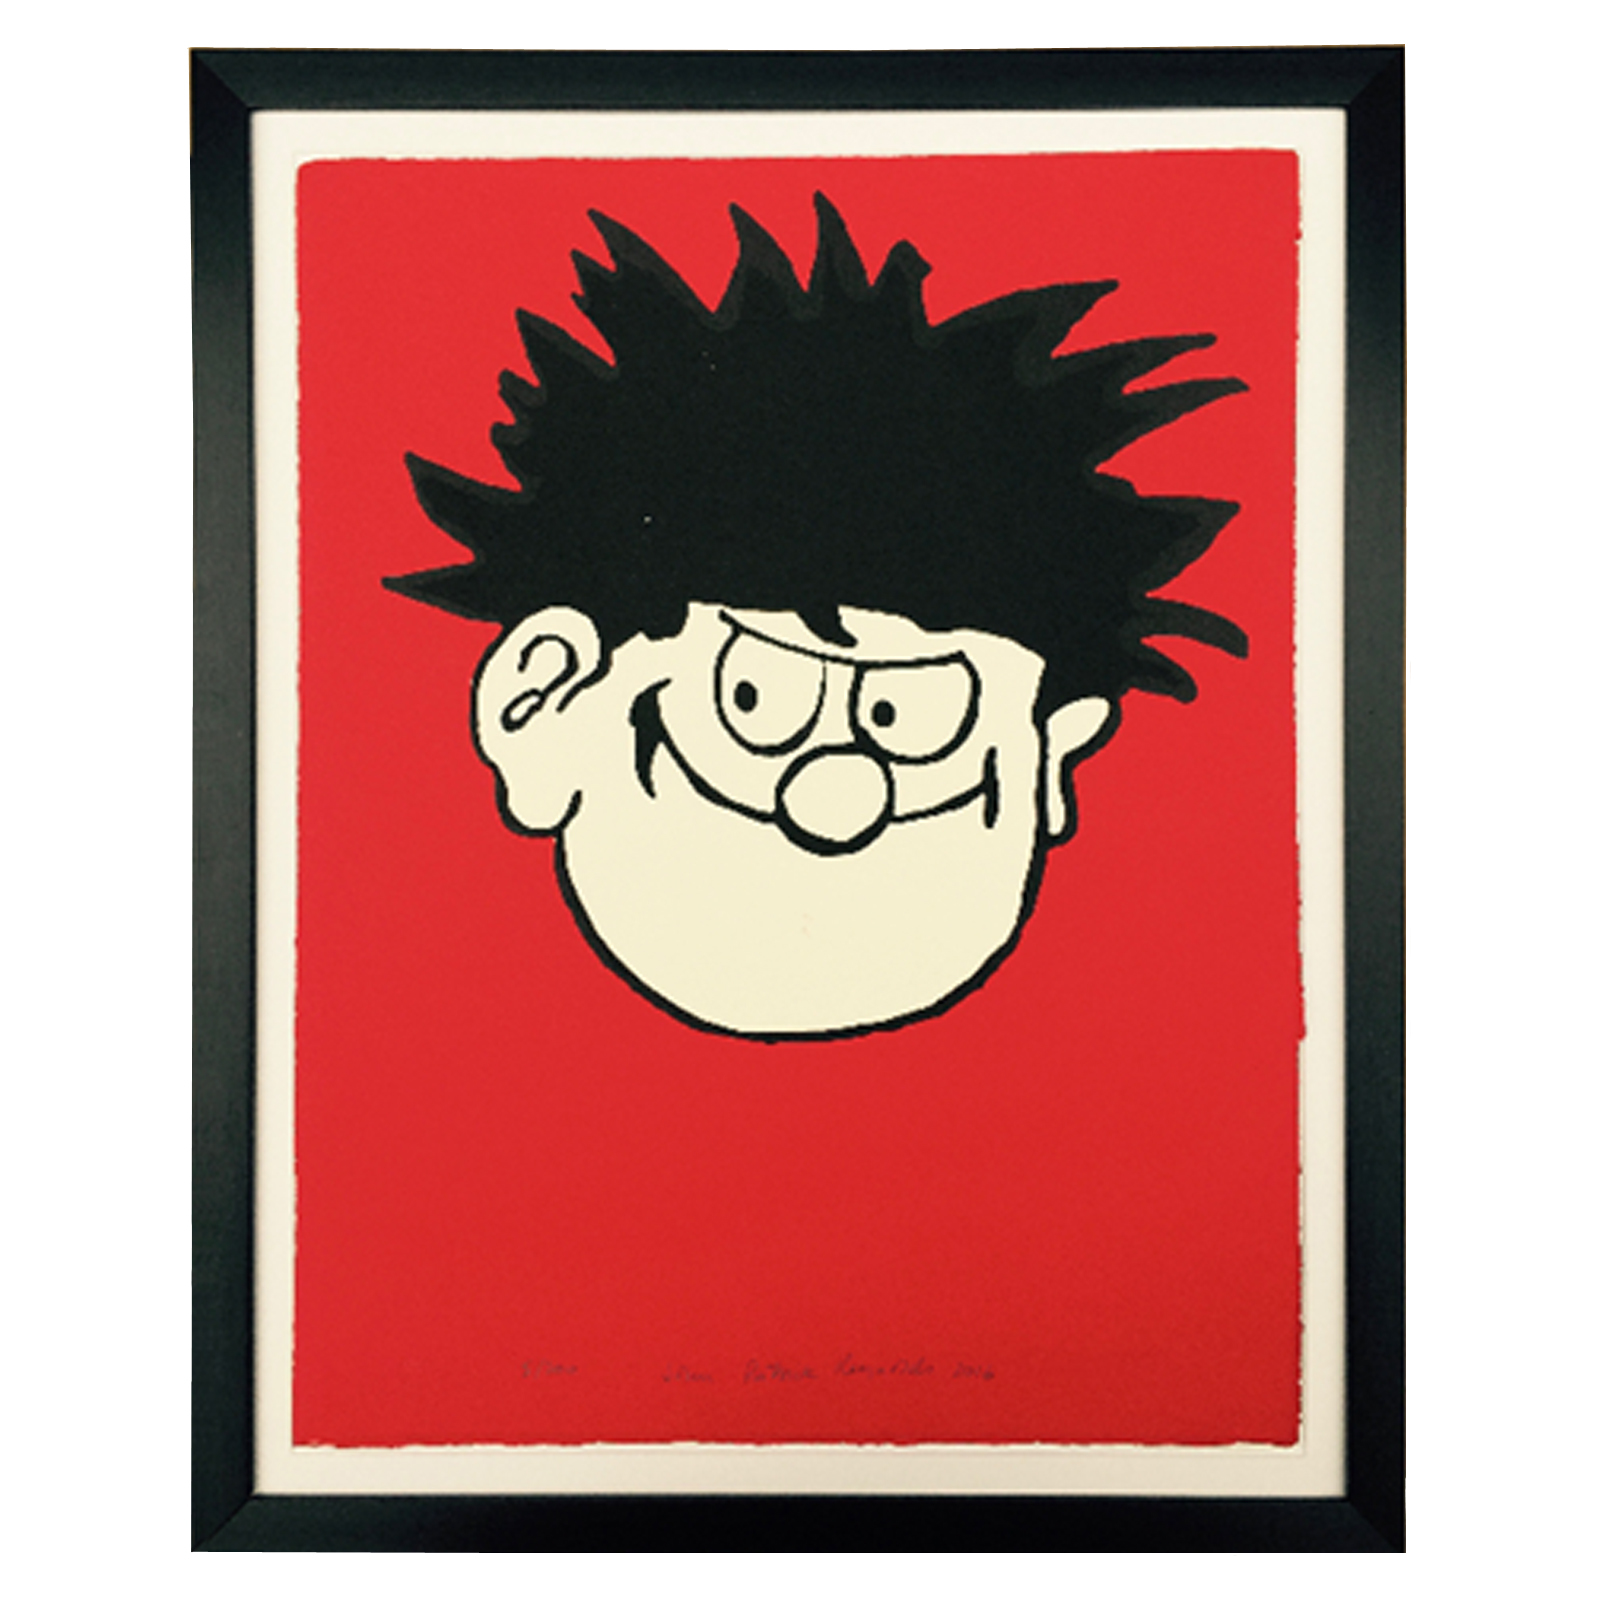 Dennis the Menace on Red - Limited Edition Screen Print